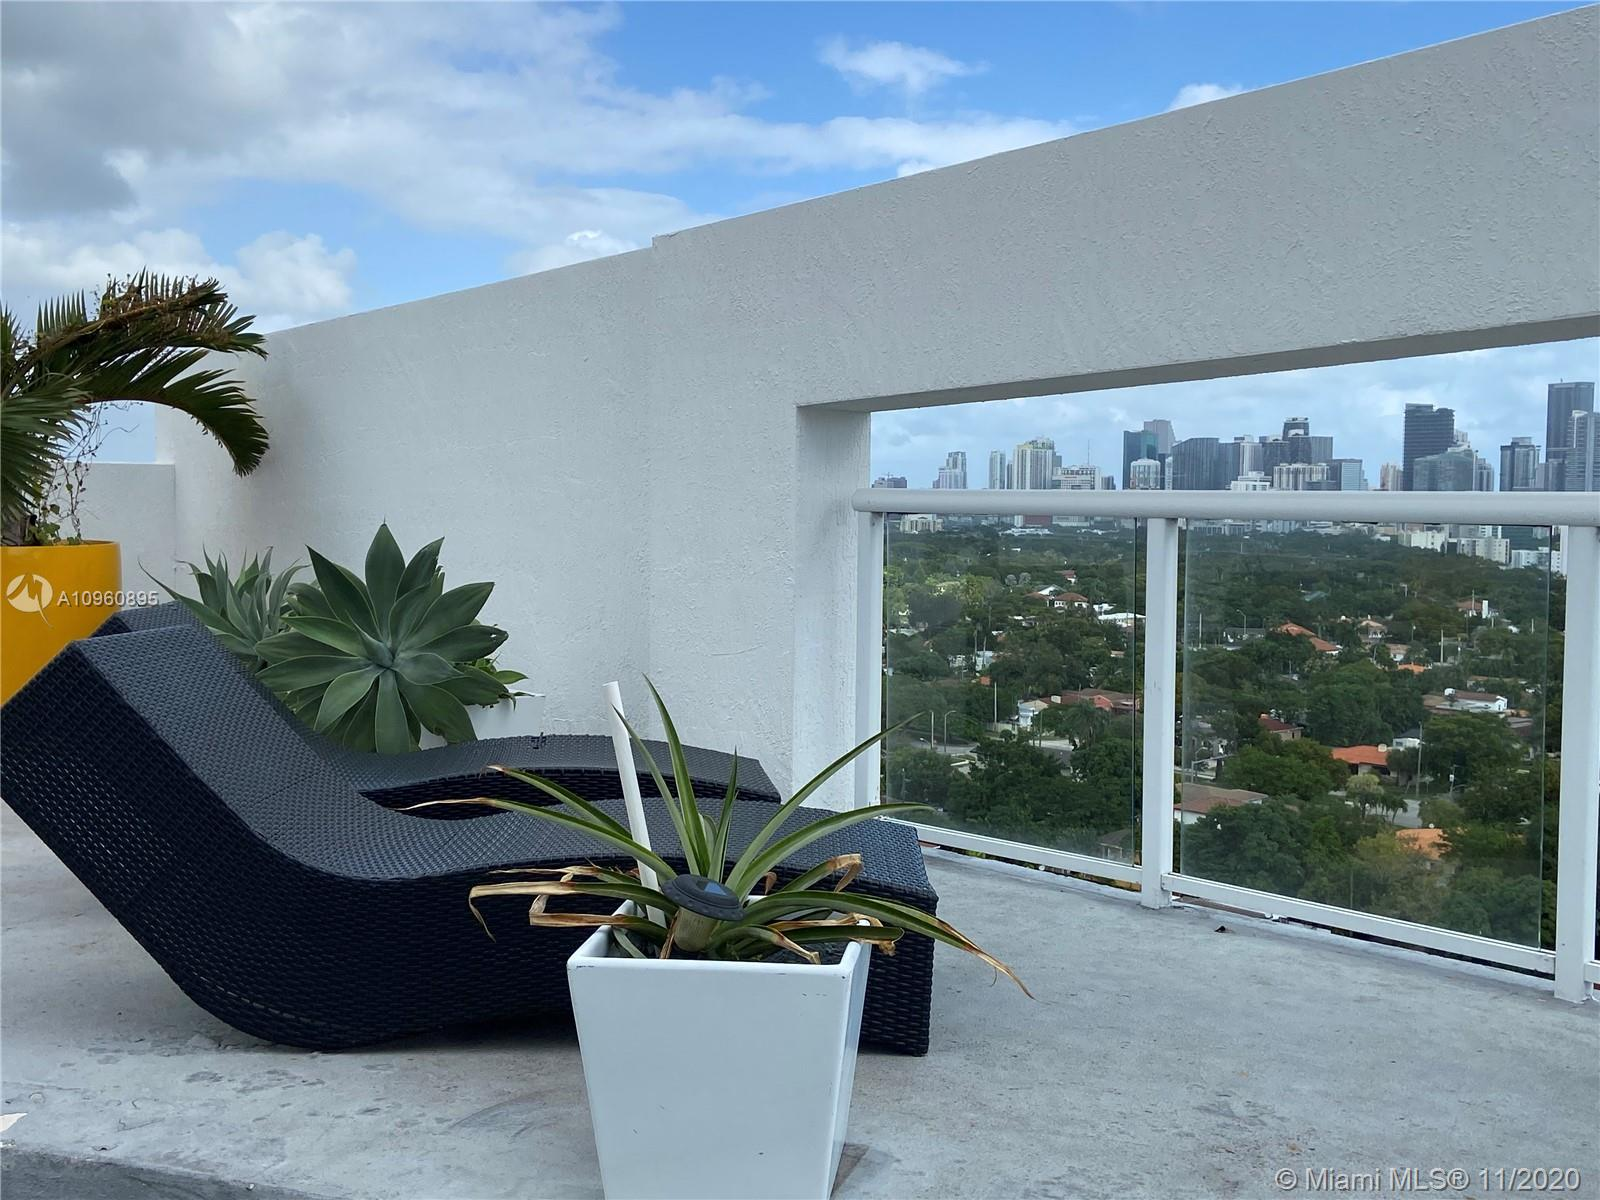 1401 SW 22nd St # 505, Miami, Florida 33145, 1 Bedroom Bedrooms, ,1 BathroomBathrooms,Residential Lease,For Rent,1401 SW 22nd St # 505,A10960895